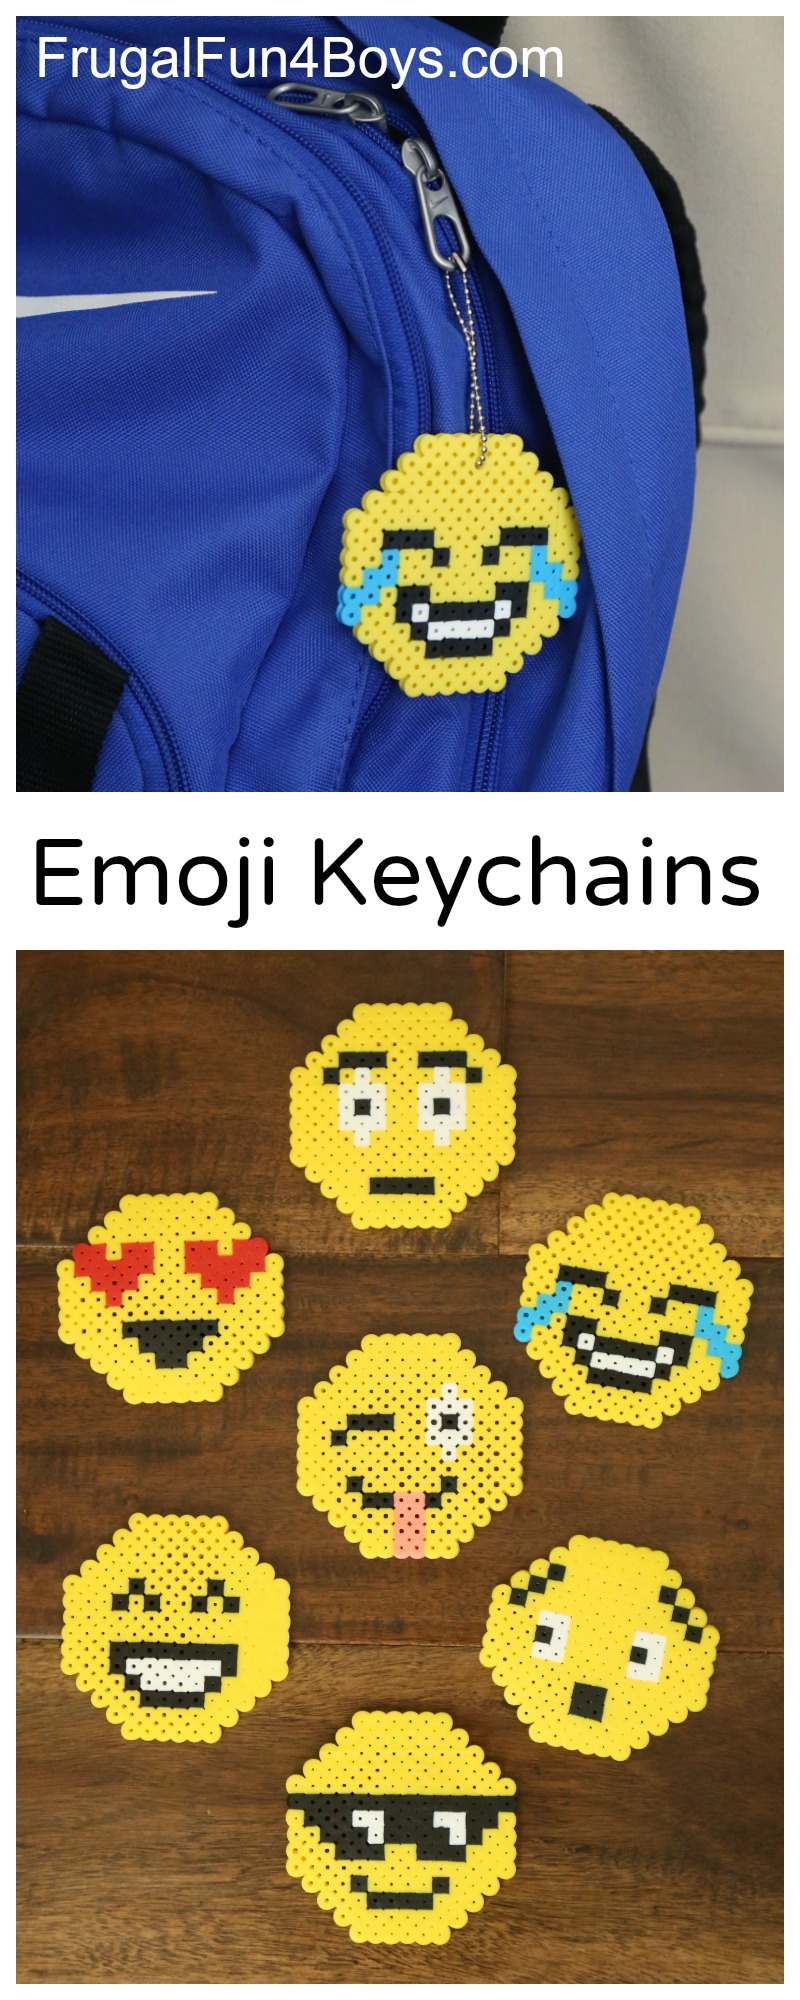 Emoji perler bead keychains frugal fun for boys and girls for Fun crafts for kids of all ages